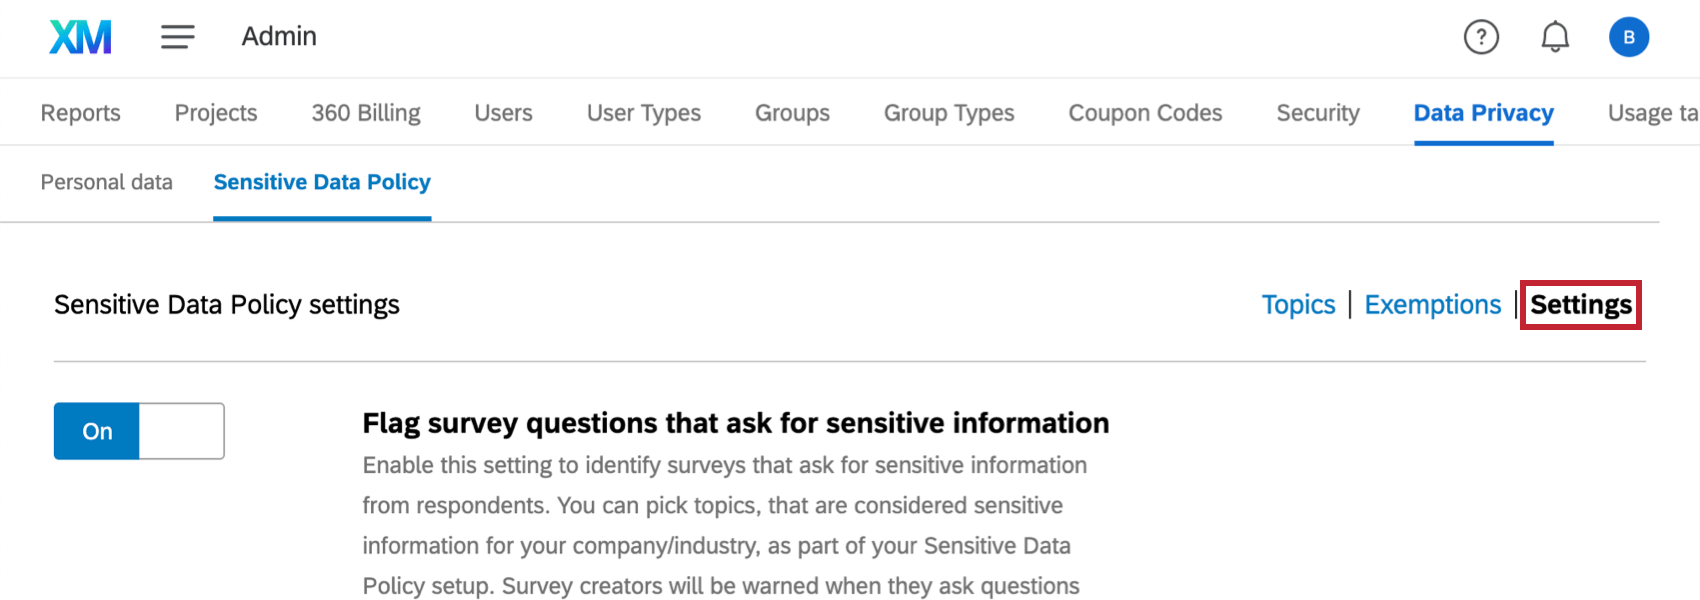 image of the sensitive data policy tab. The settings menu in the top right is highlighted